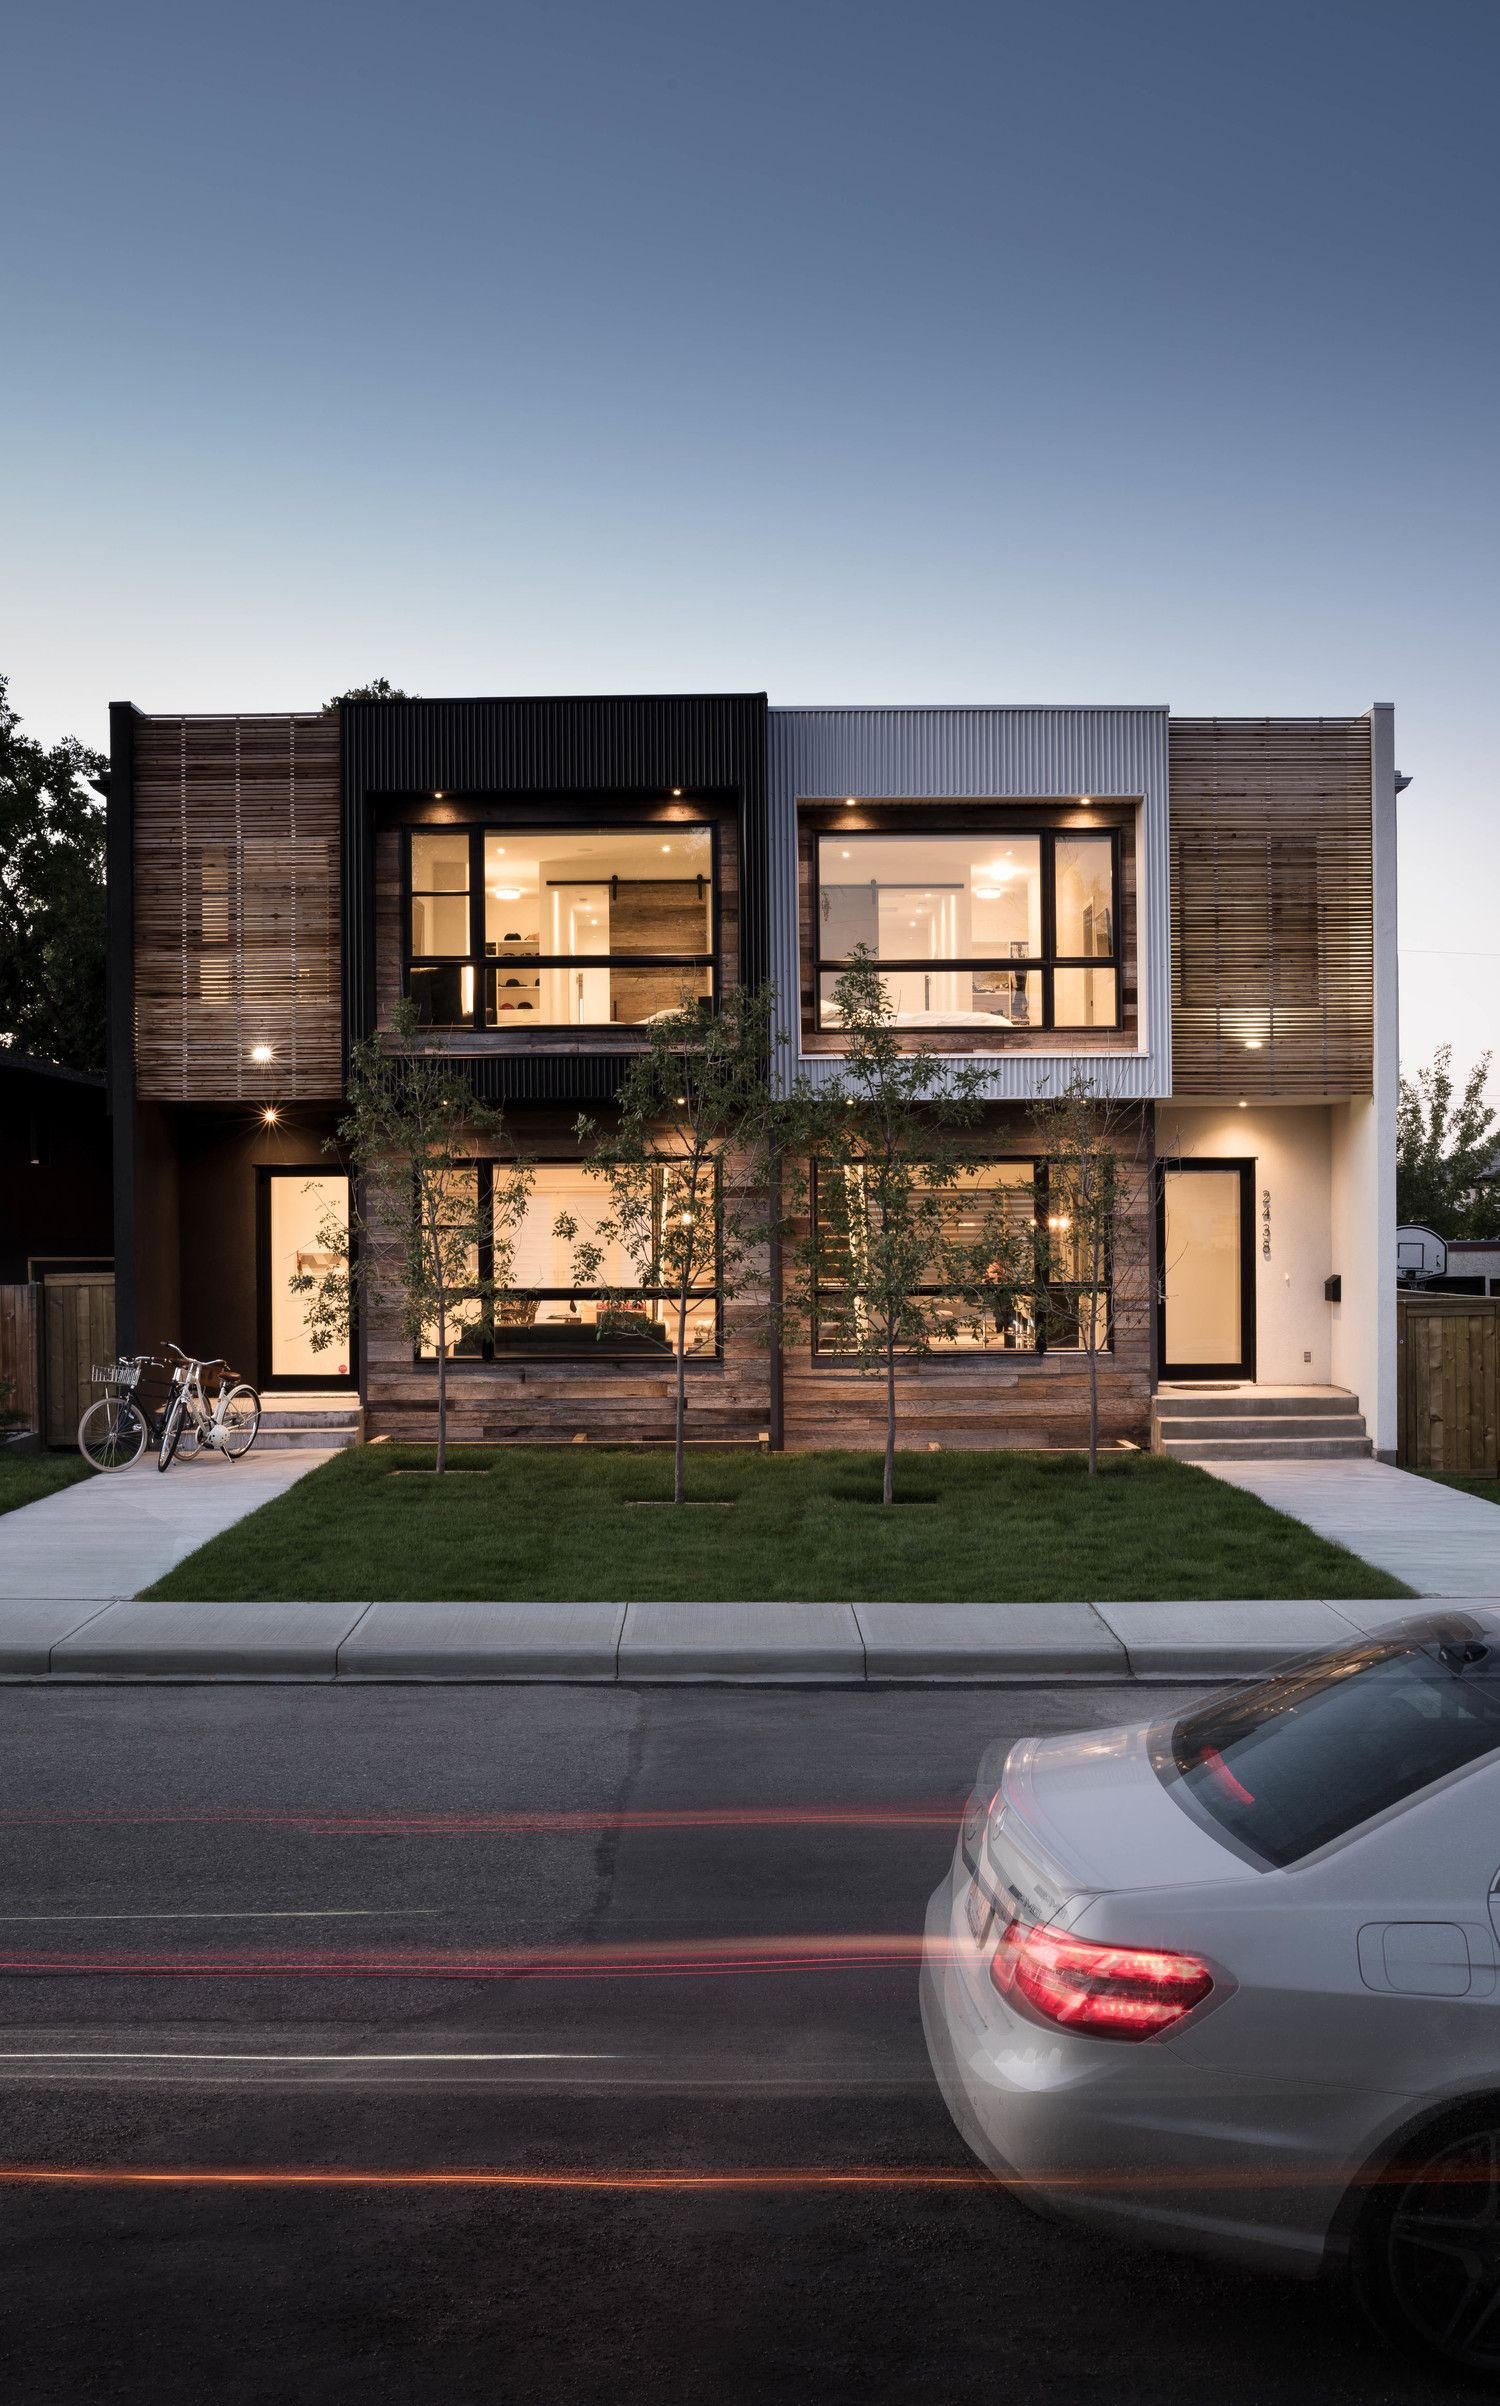 Residential Project Is A Beautifully Designed Modern Urban Infill Designed